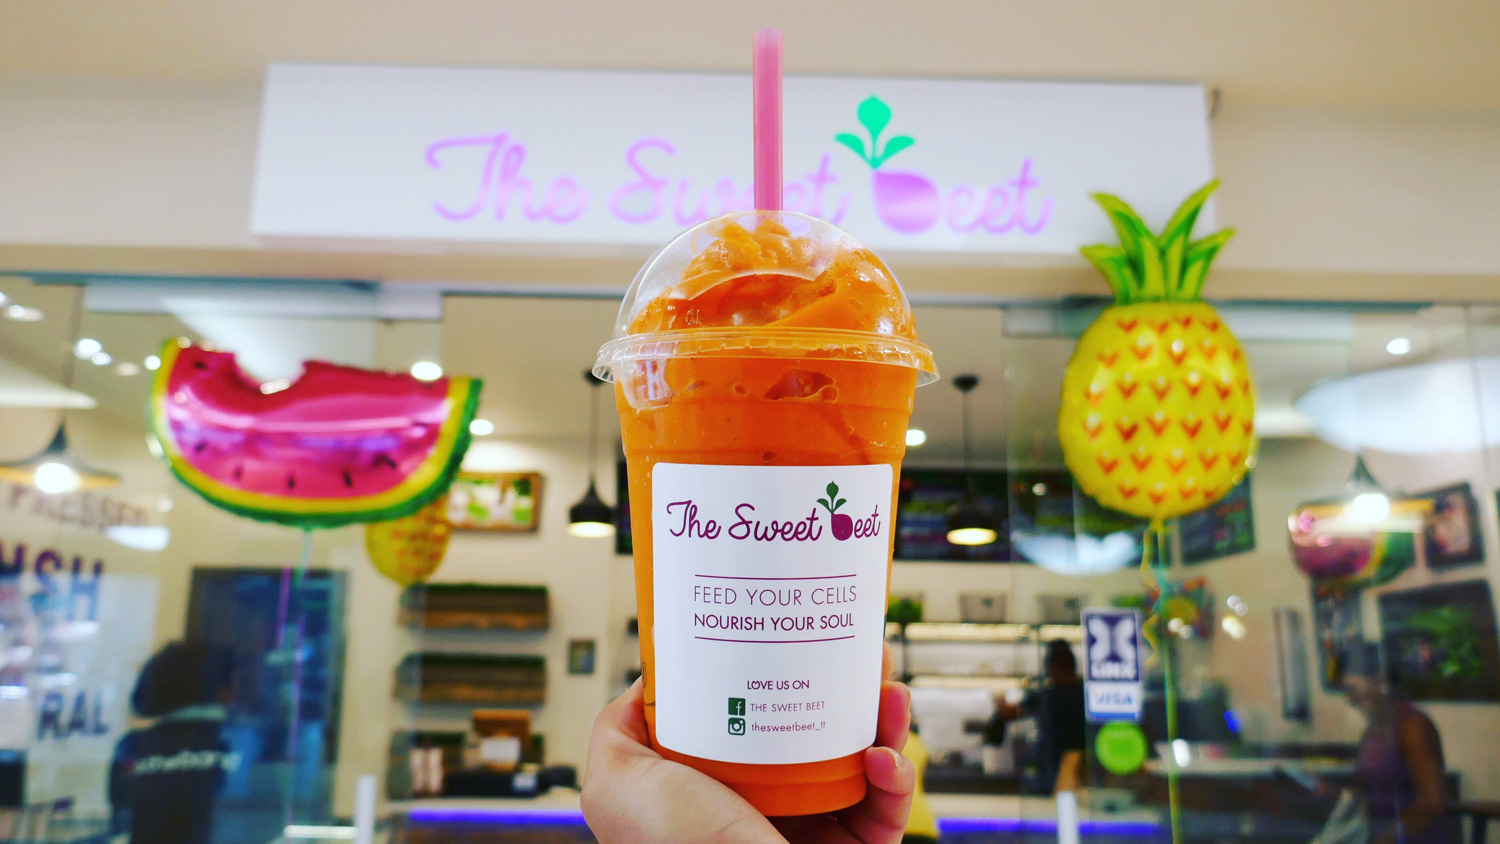 The Sweet Beet Juice Bar